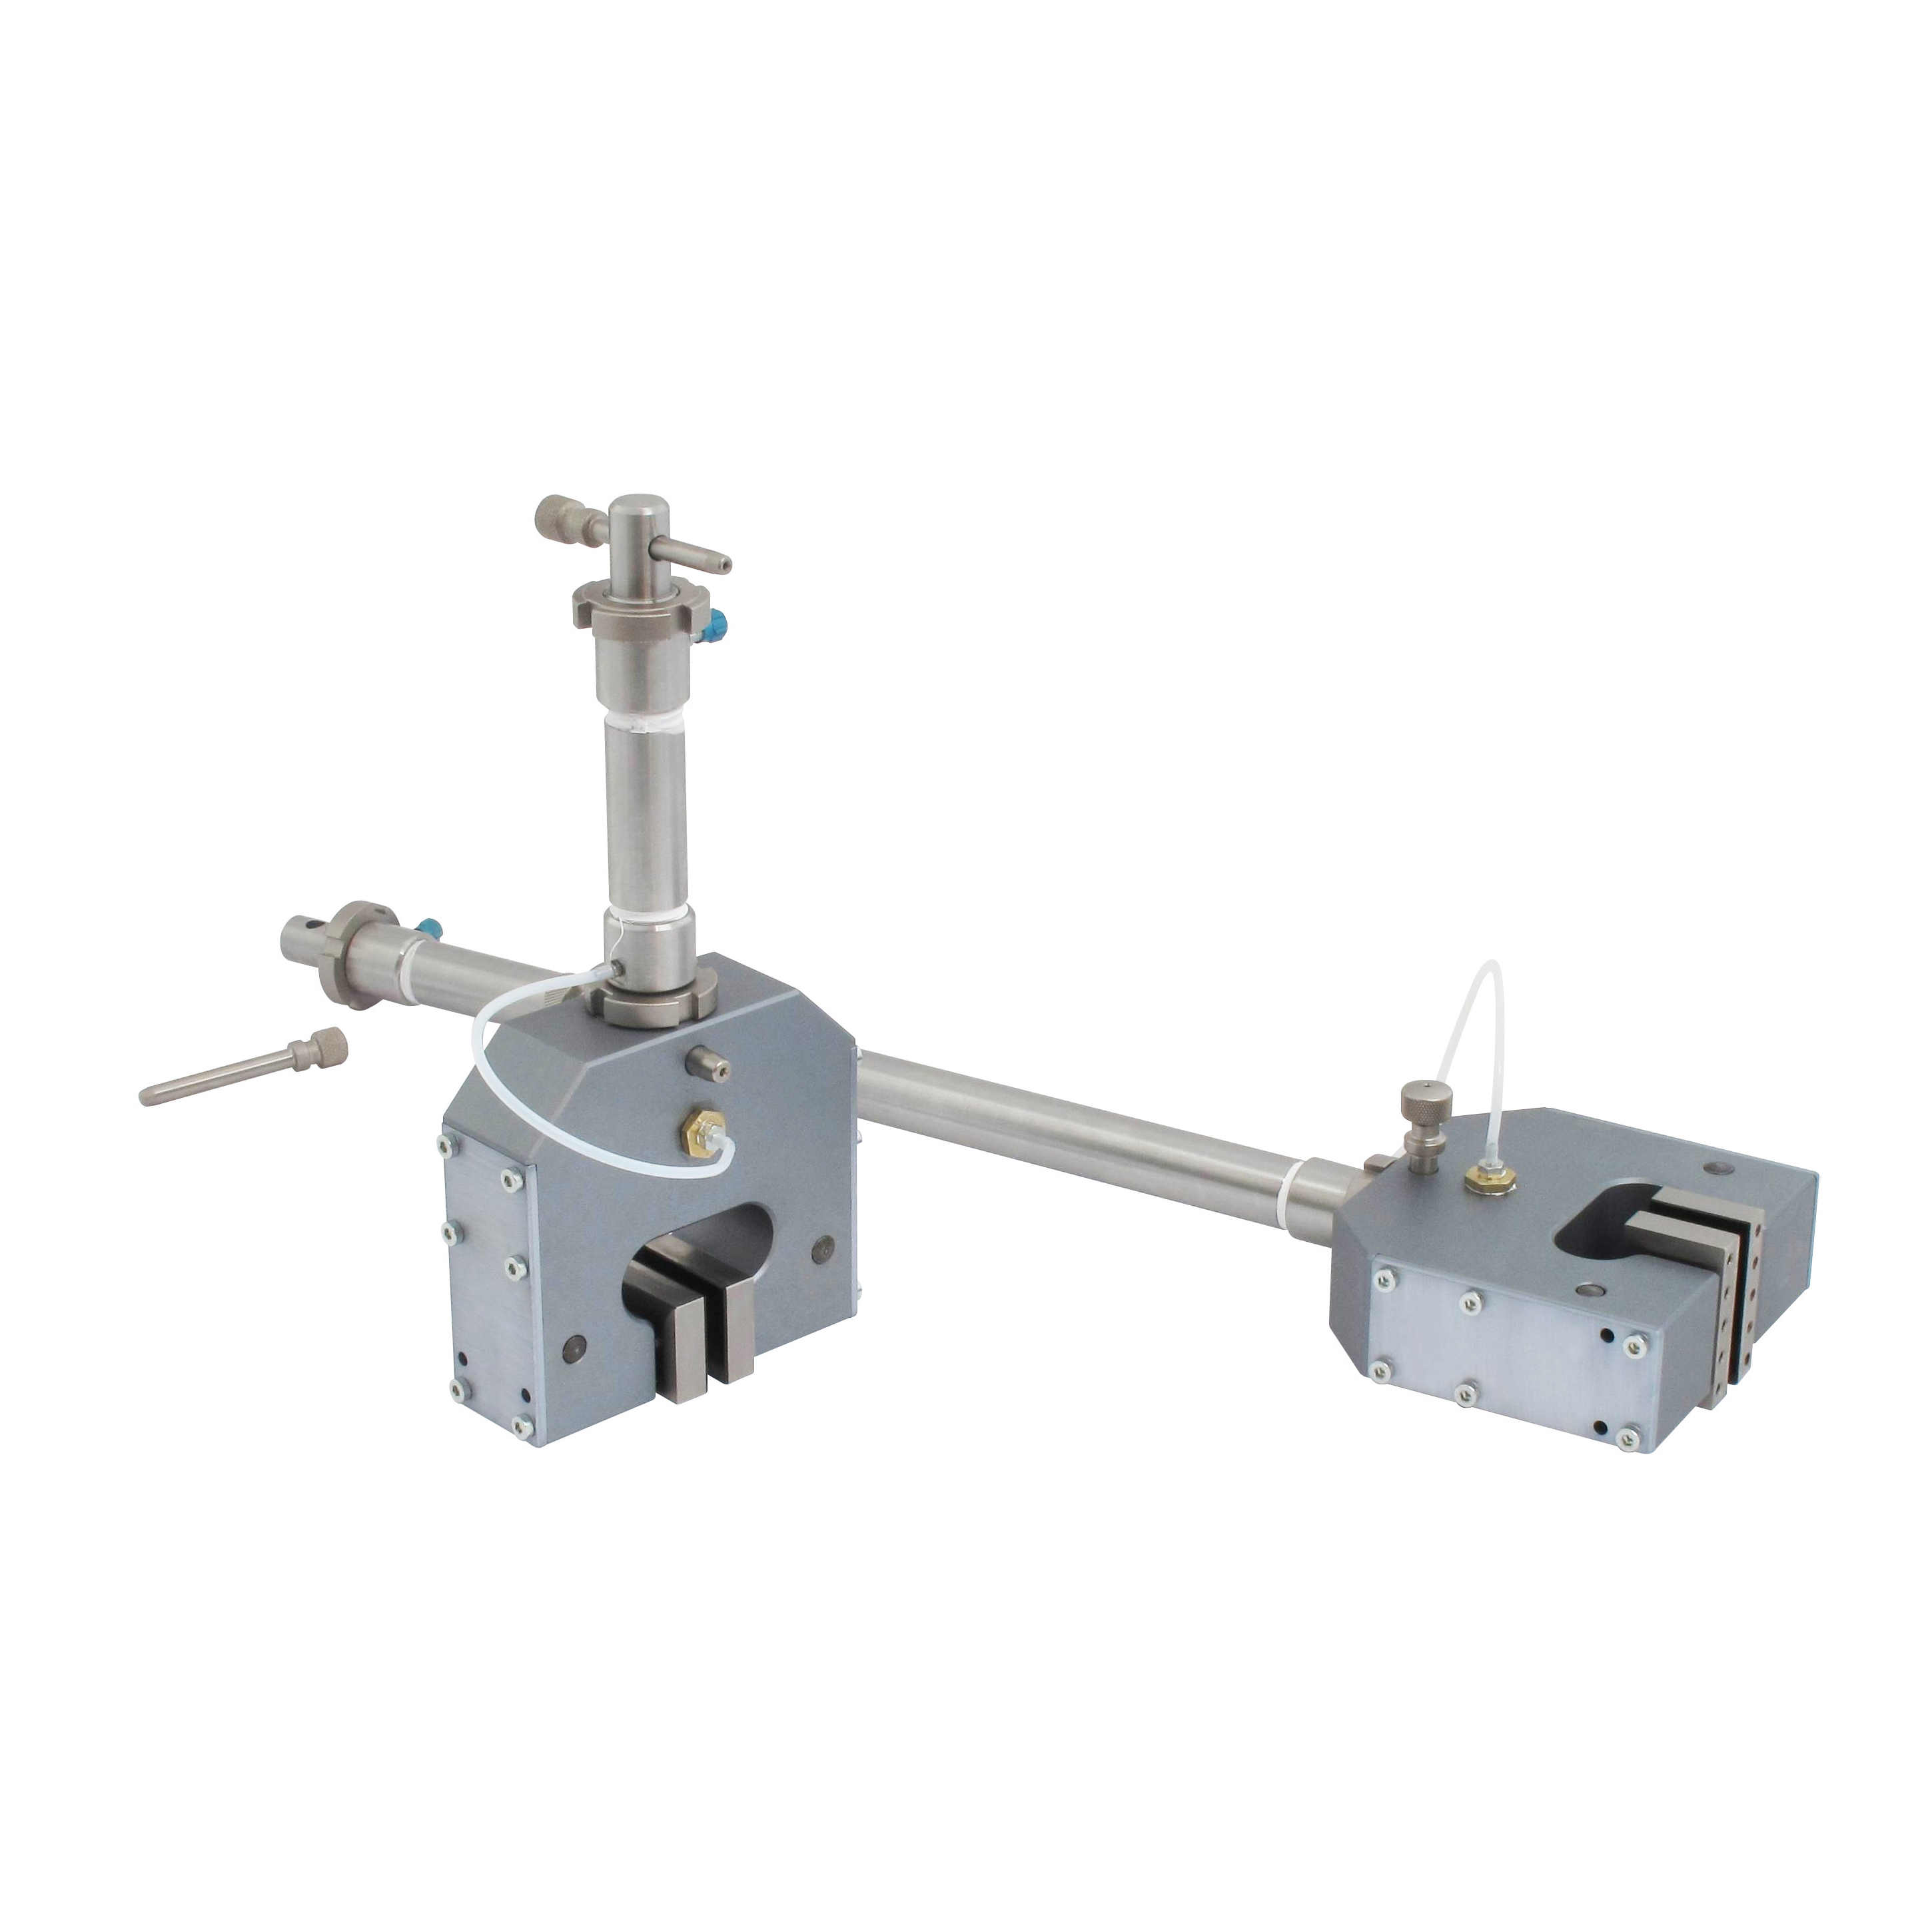 G149 Pneumatic Grip for Temperature Chambers